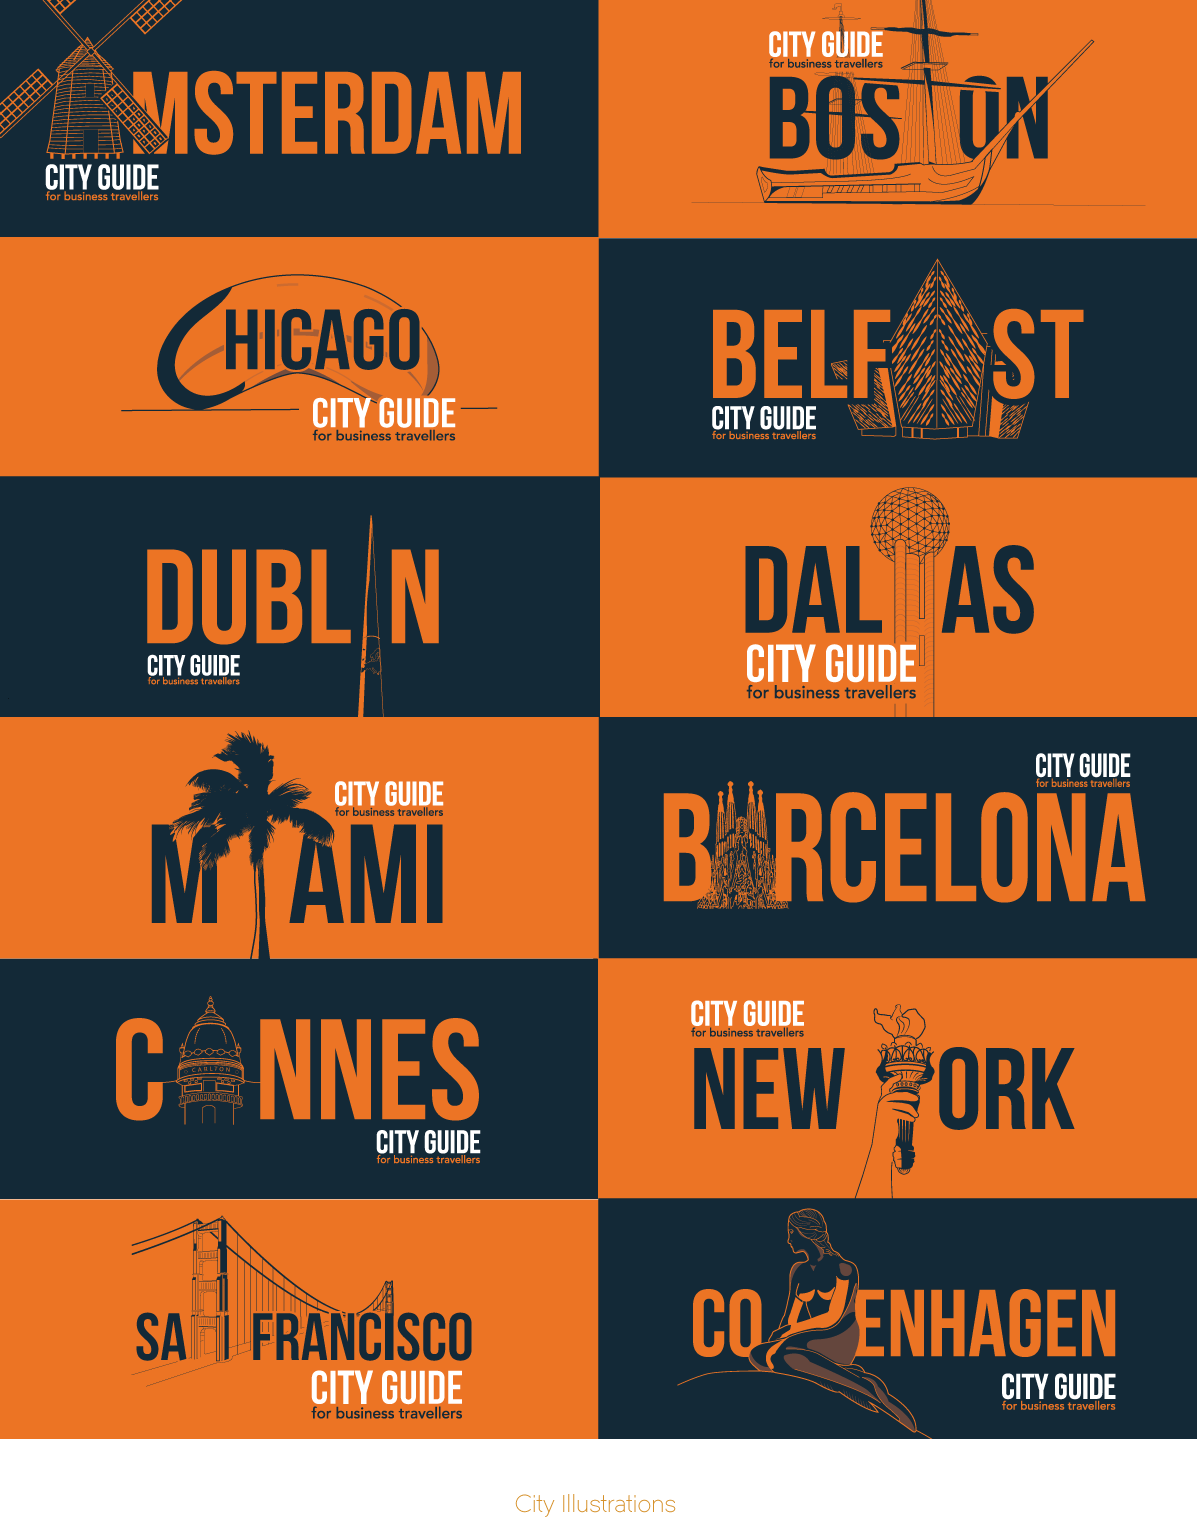 banners_City-guides.png